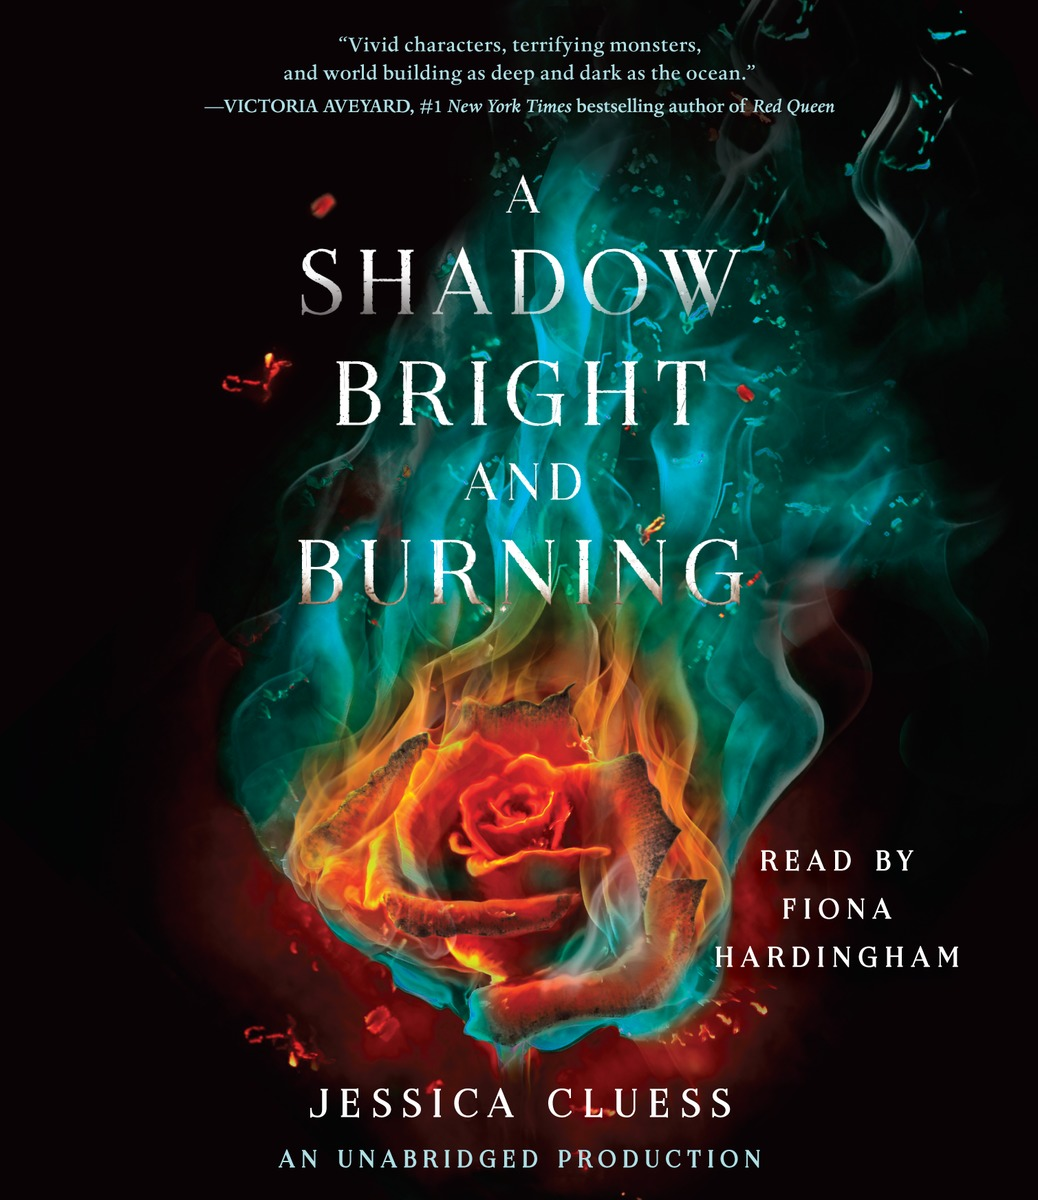 A Shadow Bright and Burning (Kingdom on Fire, Book One) stands a shadow